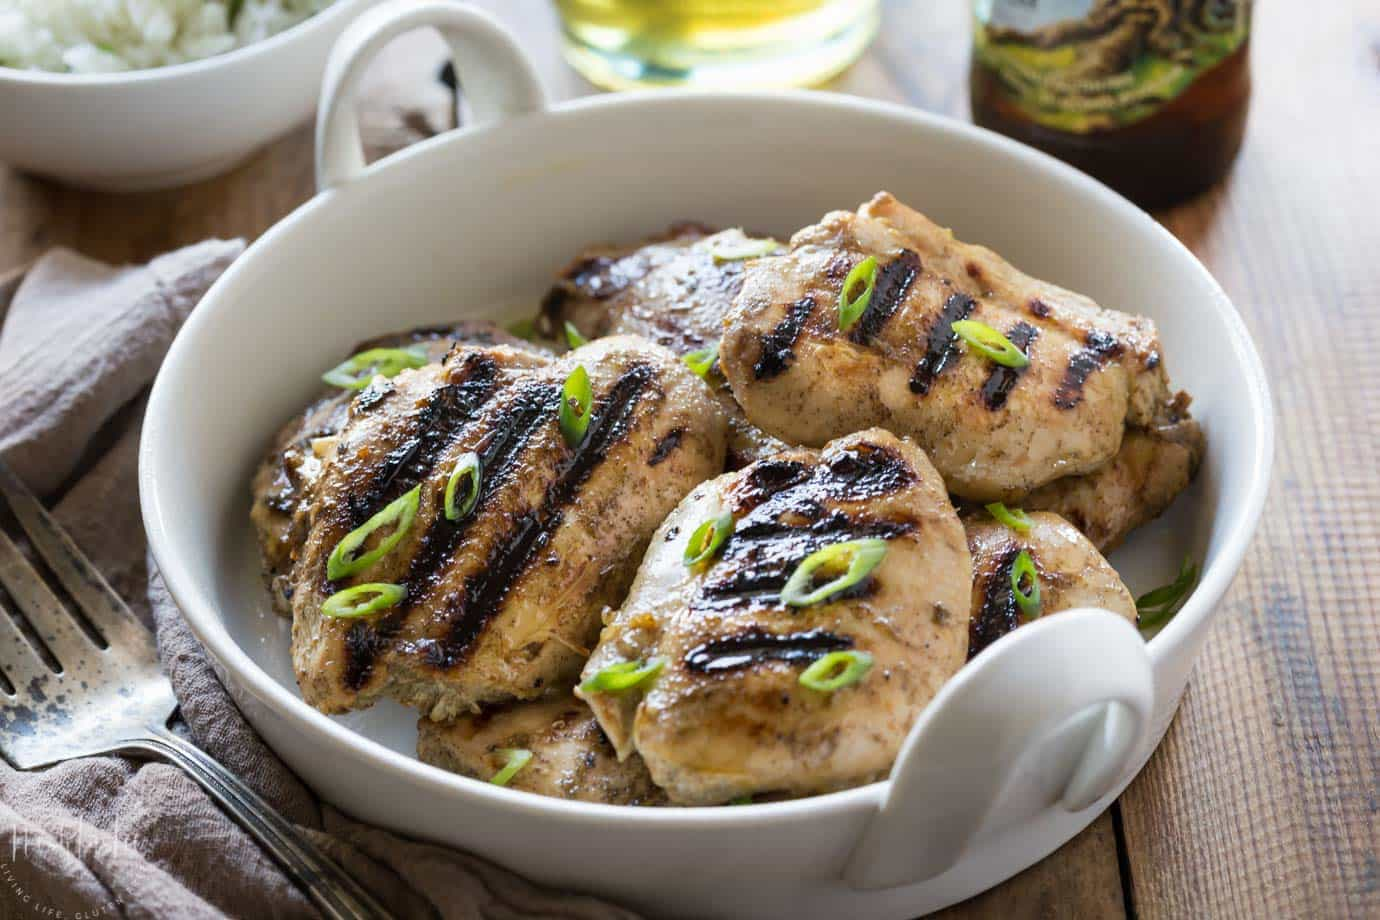 My authentic jerk chicken recipe is very simple to prepare and packs a fabulous flavor punch!! it's gluten free, paleo and whole30 too! Jerk chicken spice rub, jerk chicken marinade